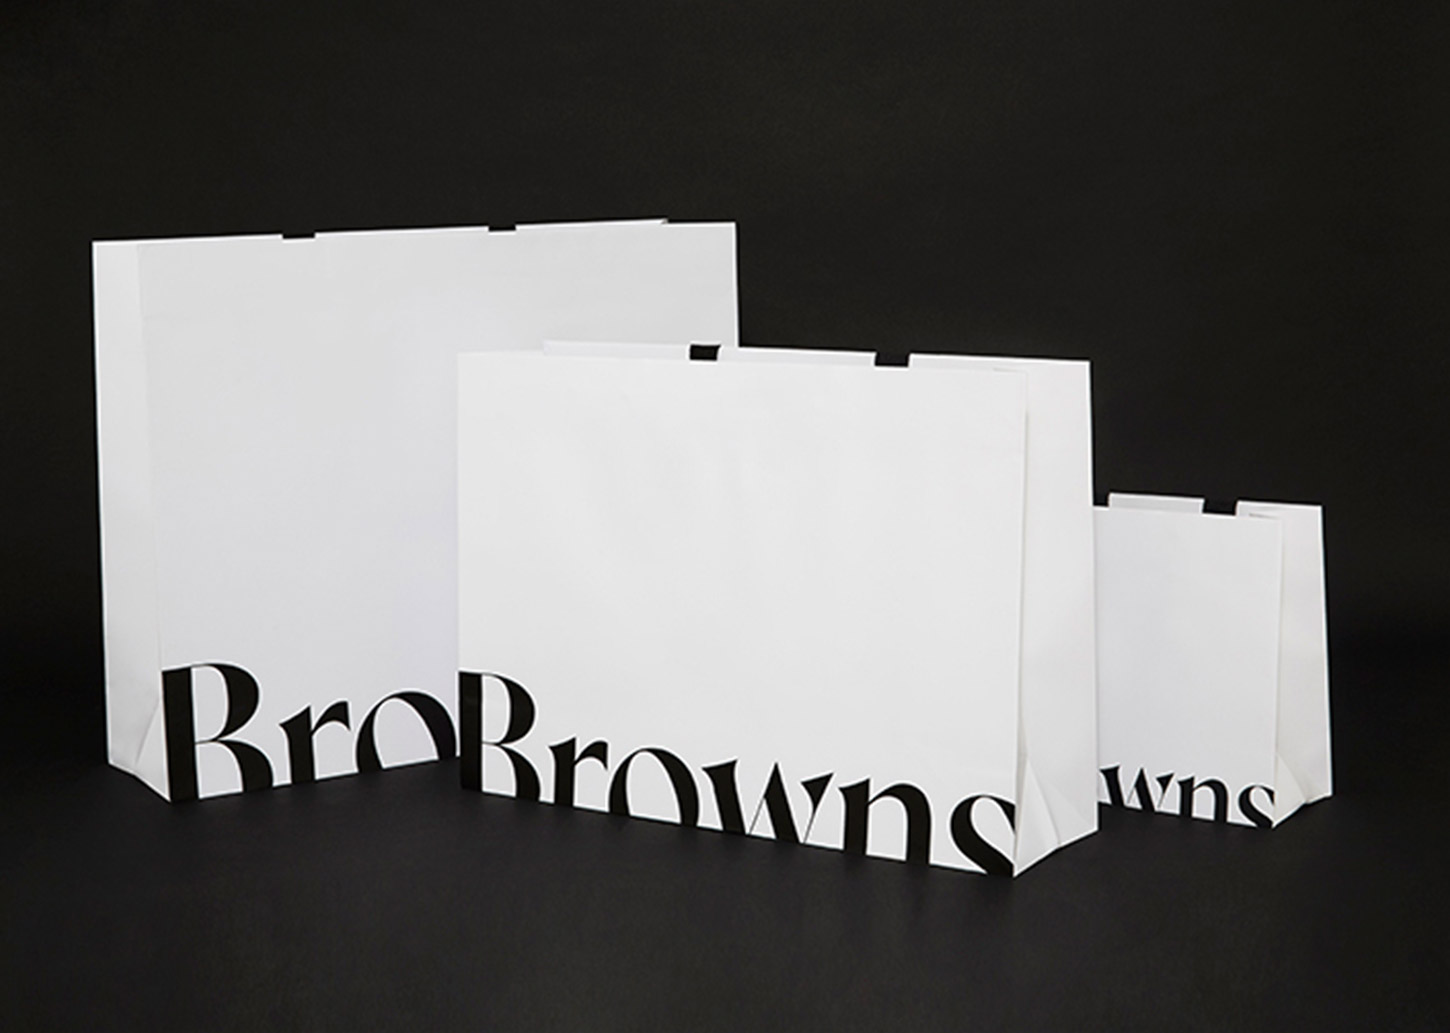 scratch card promotion - Browns shopping bag logo redesign